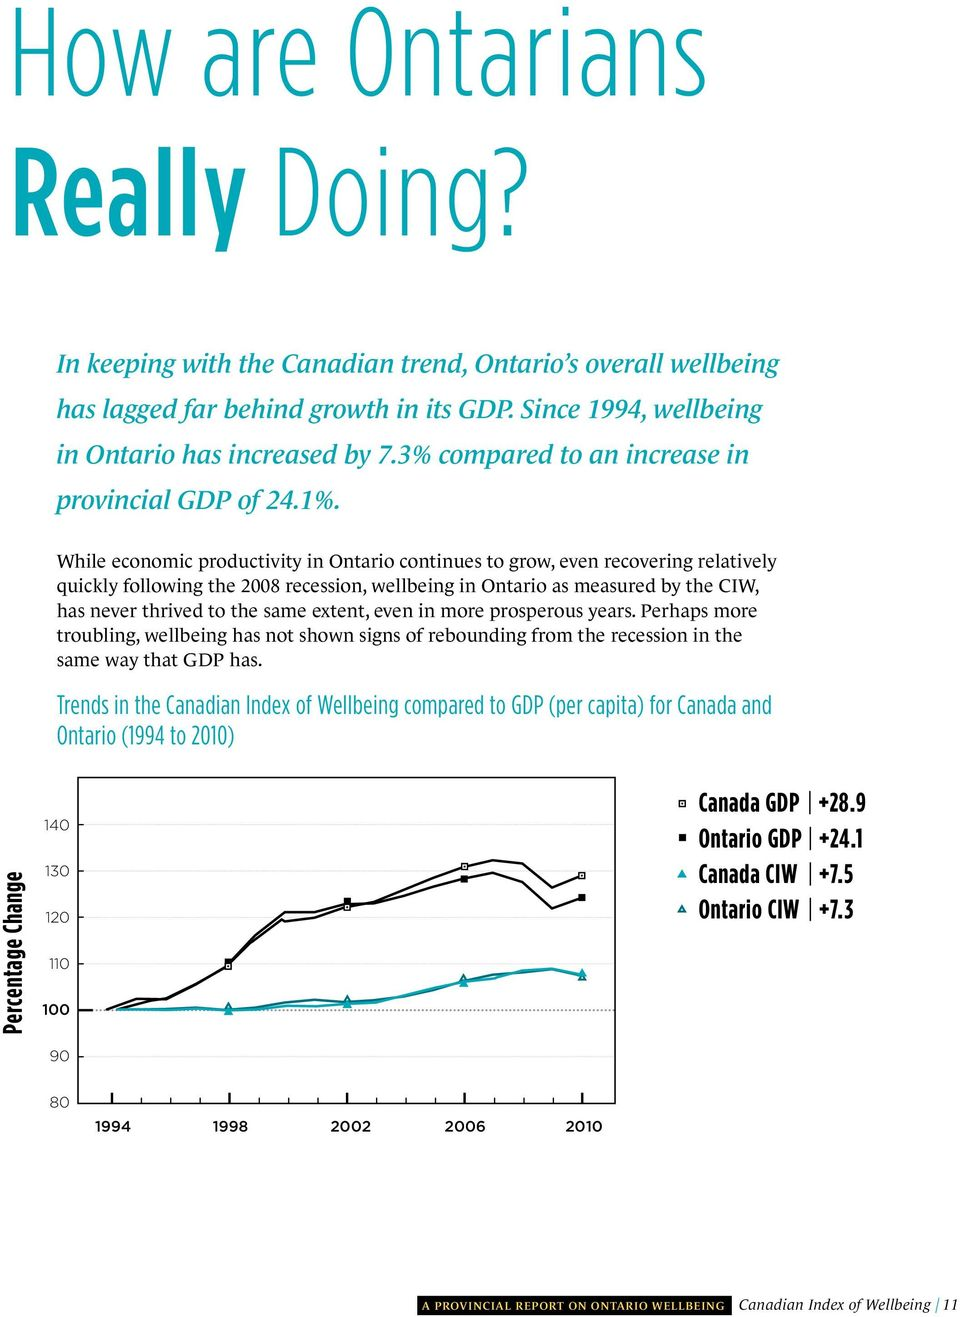 While economic productivity in Ontario continues to grow, even recovering relatively quickly following the 2008 recession, wellbeing in Ontario as measured by the CIW, has never thrived to the same